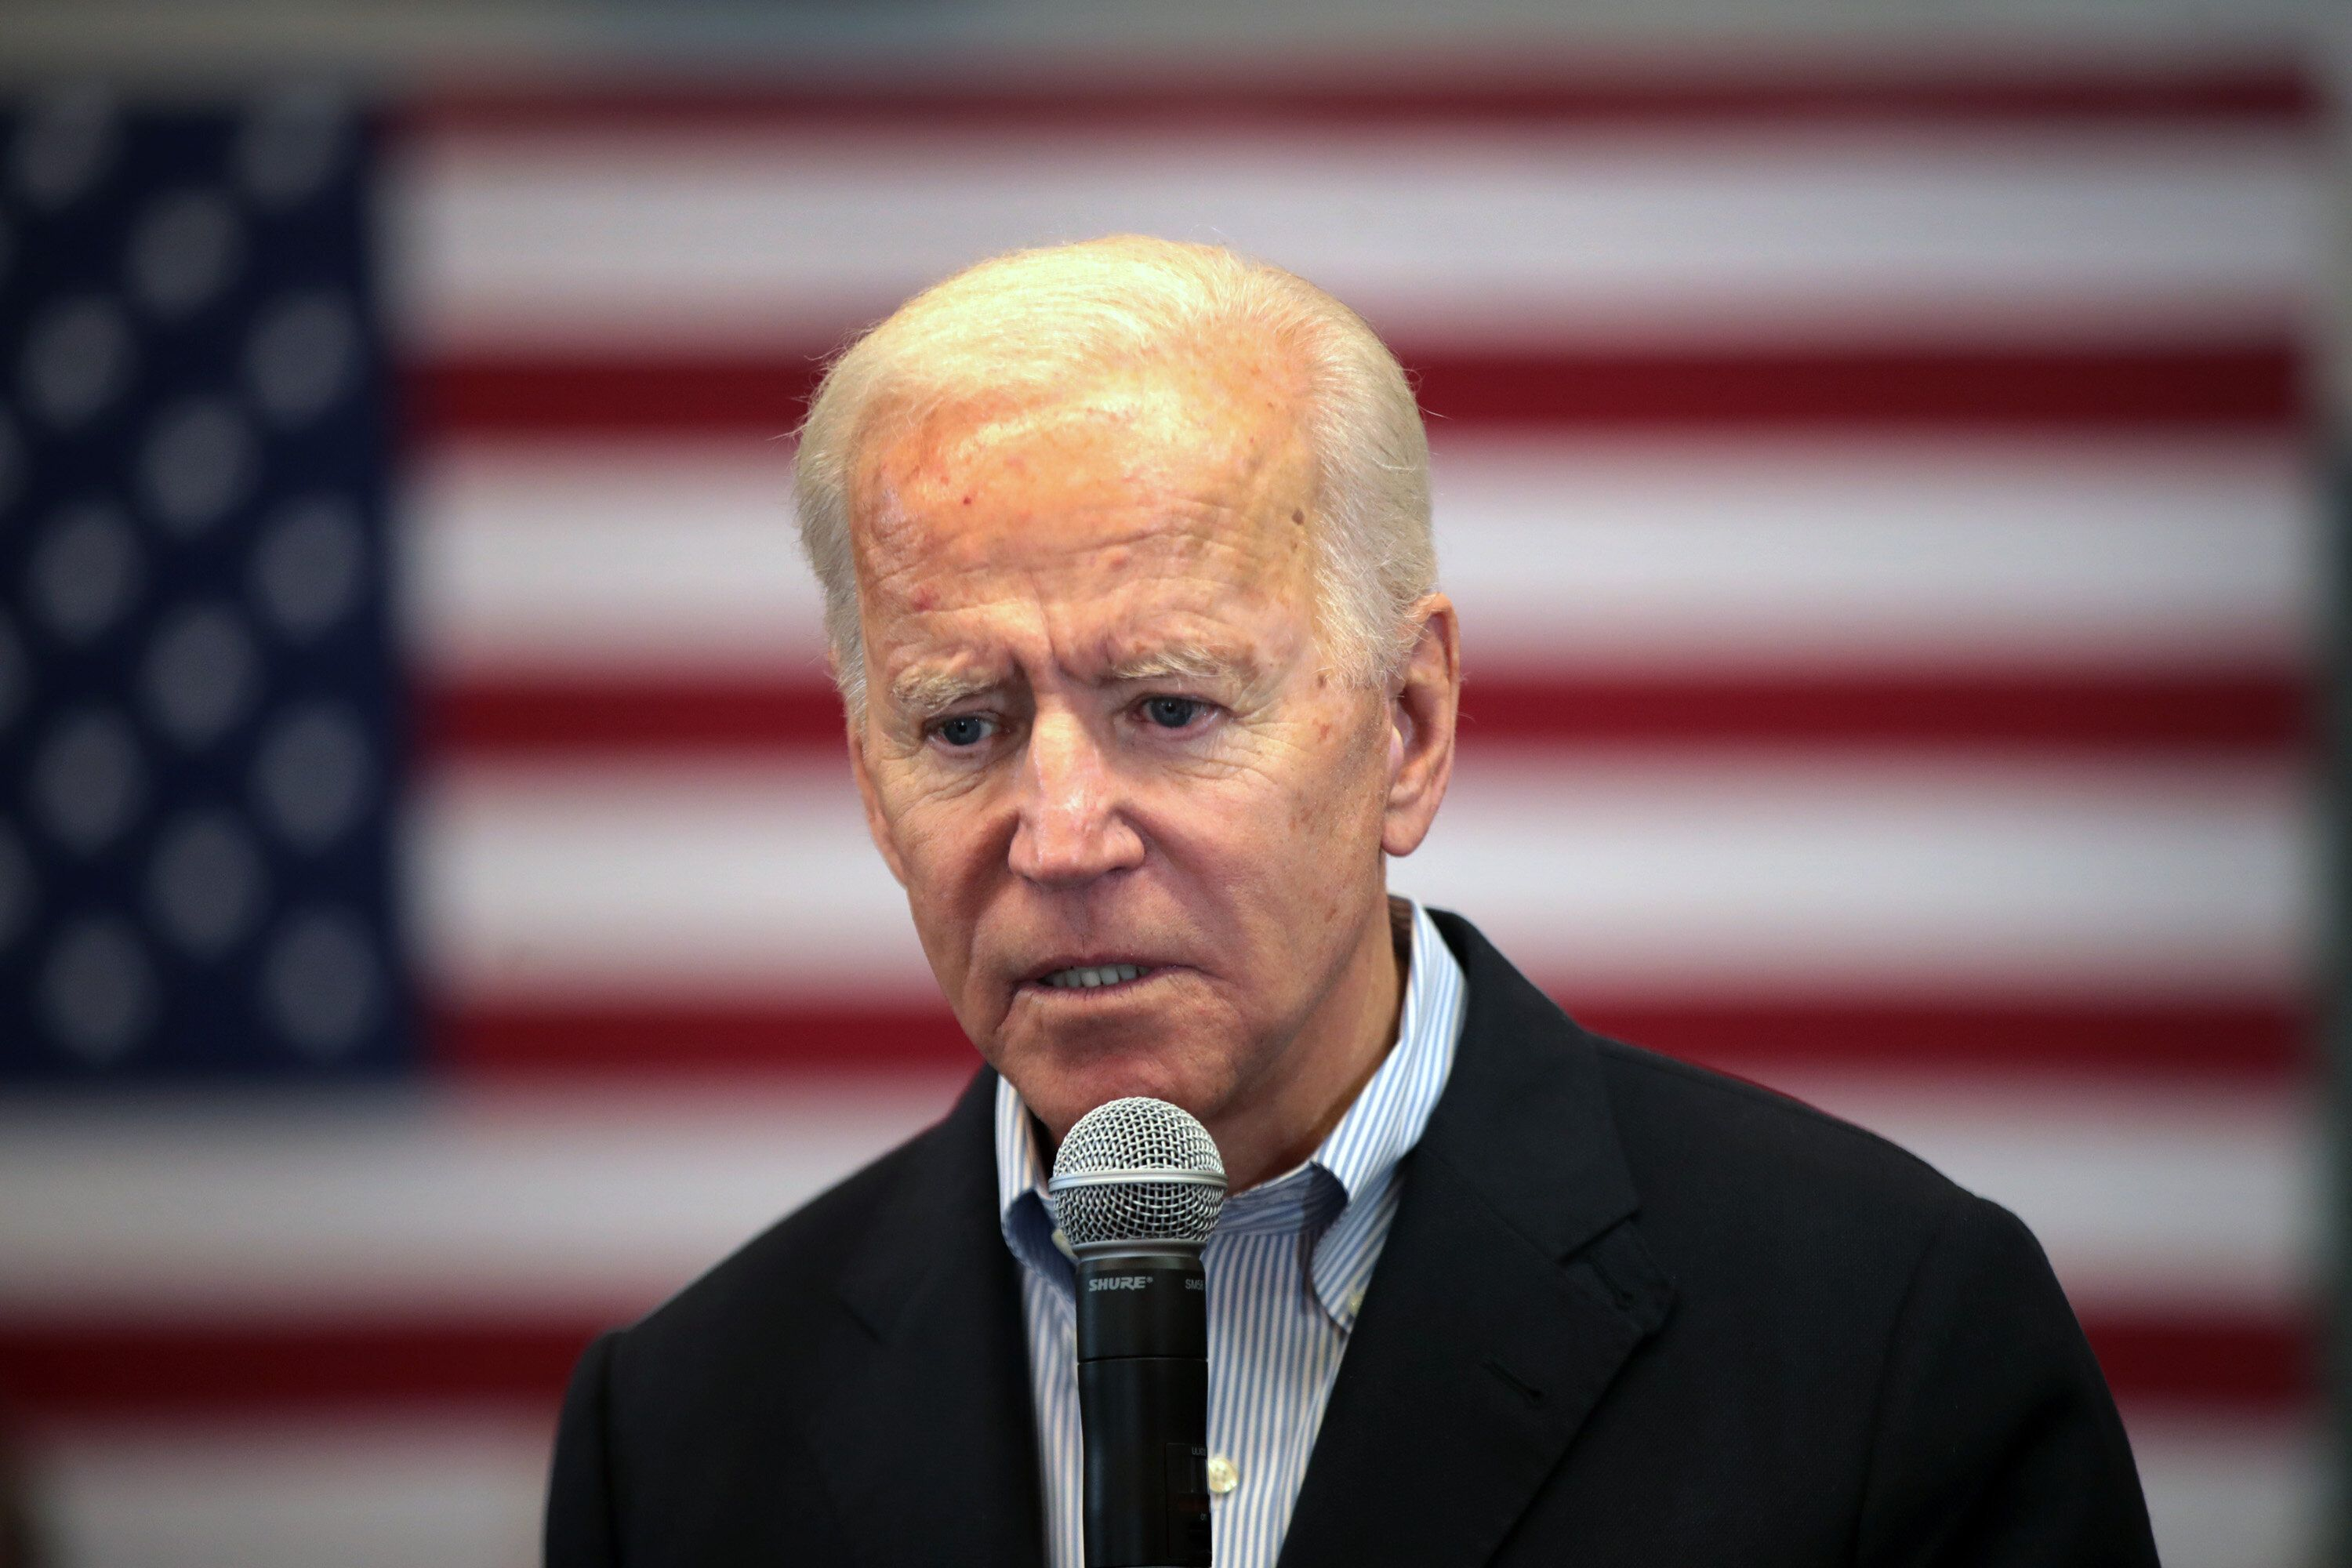 Joe Biden Snaps At Voter During ...